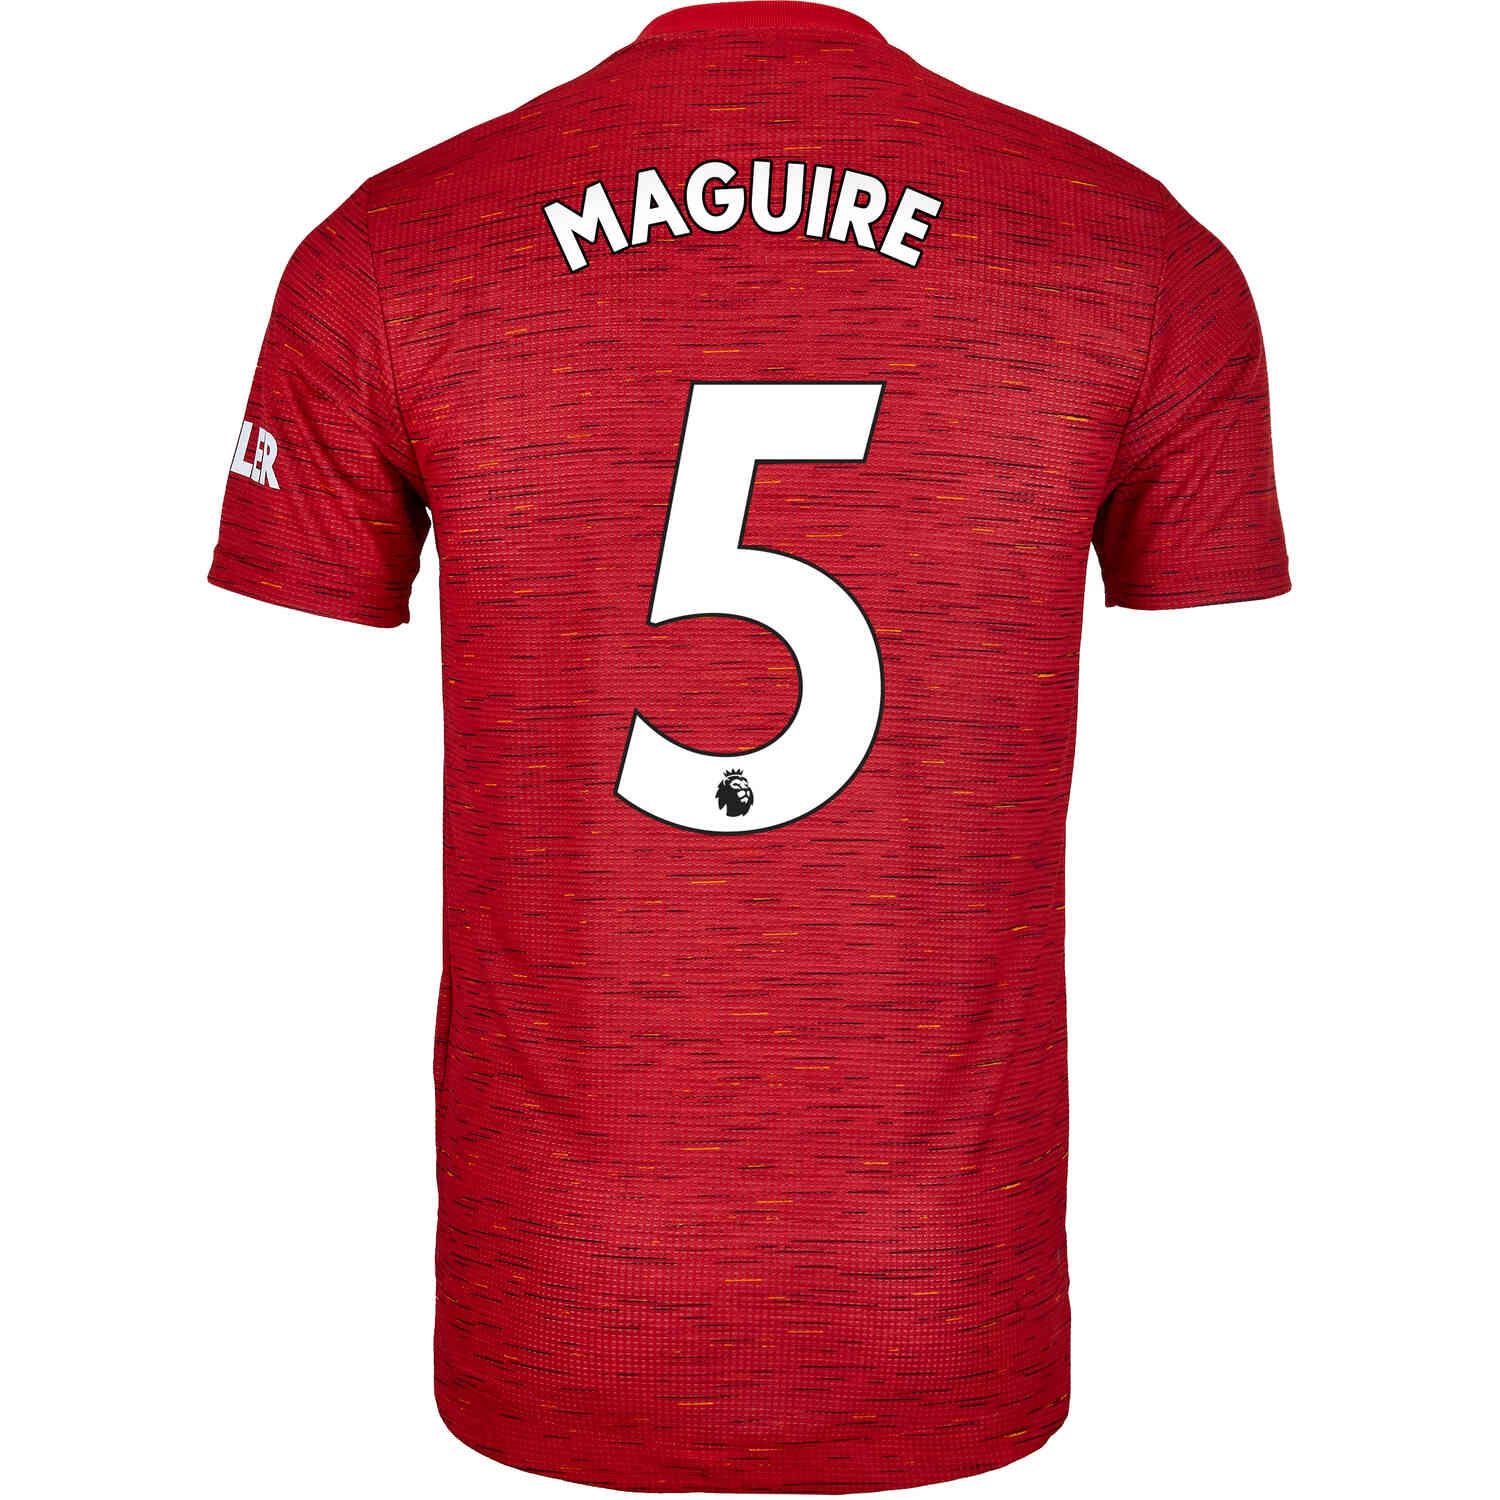 2020/21 adidas Harry Maguire Manchester United Home Authentic Jersey - SoccerPro